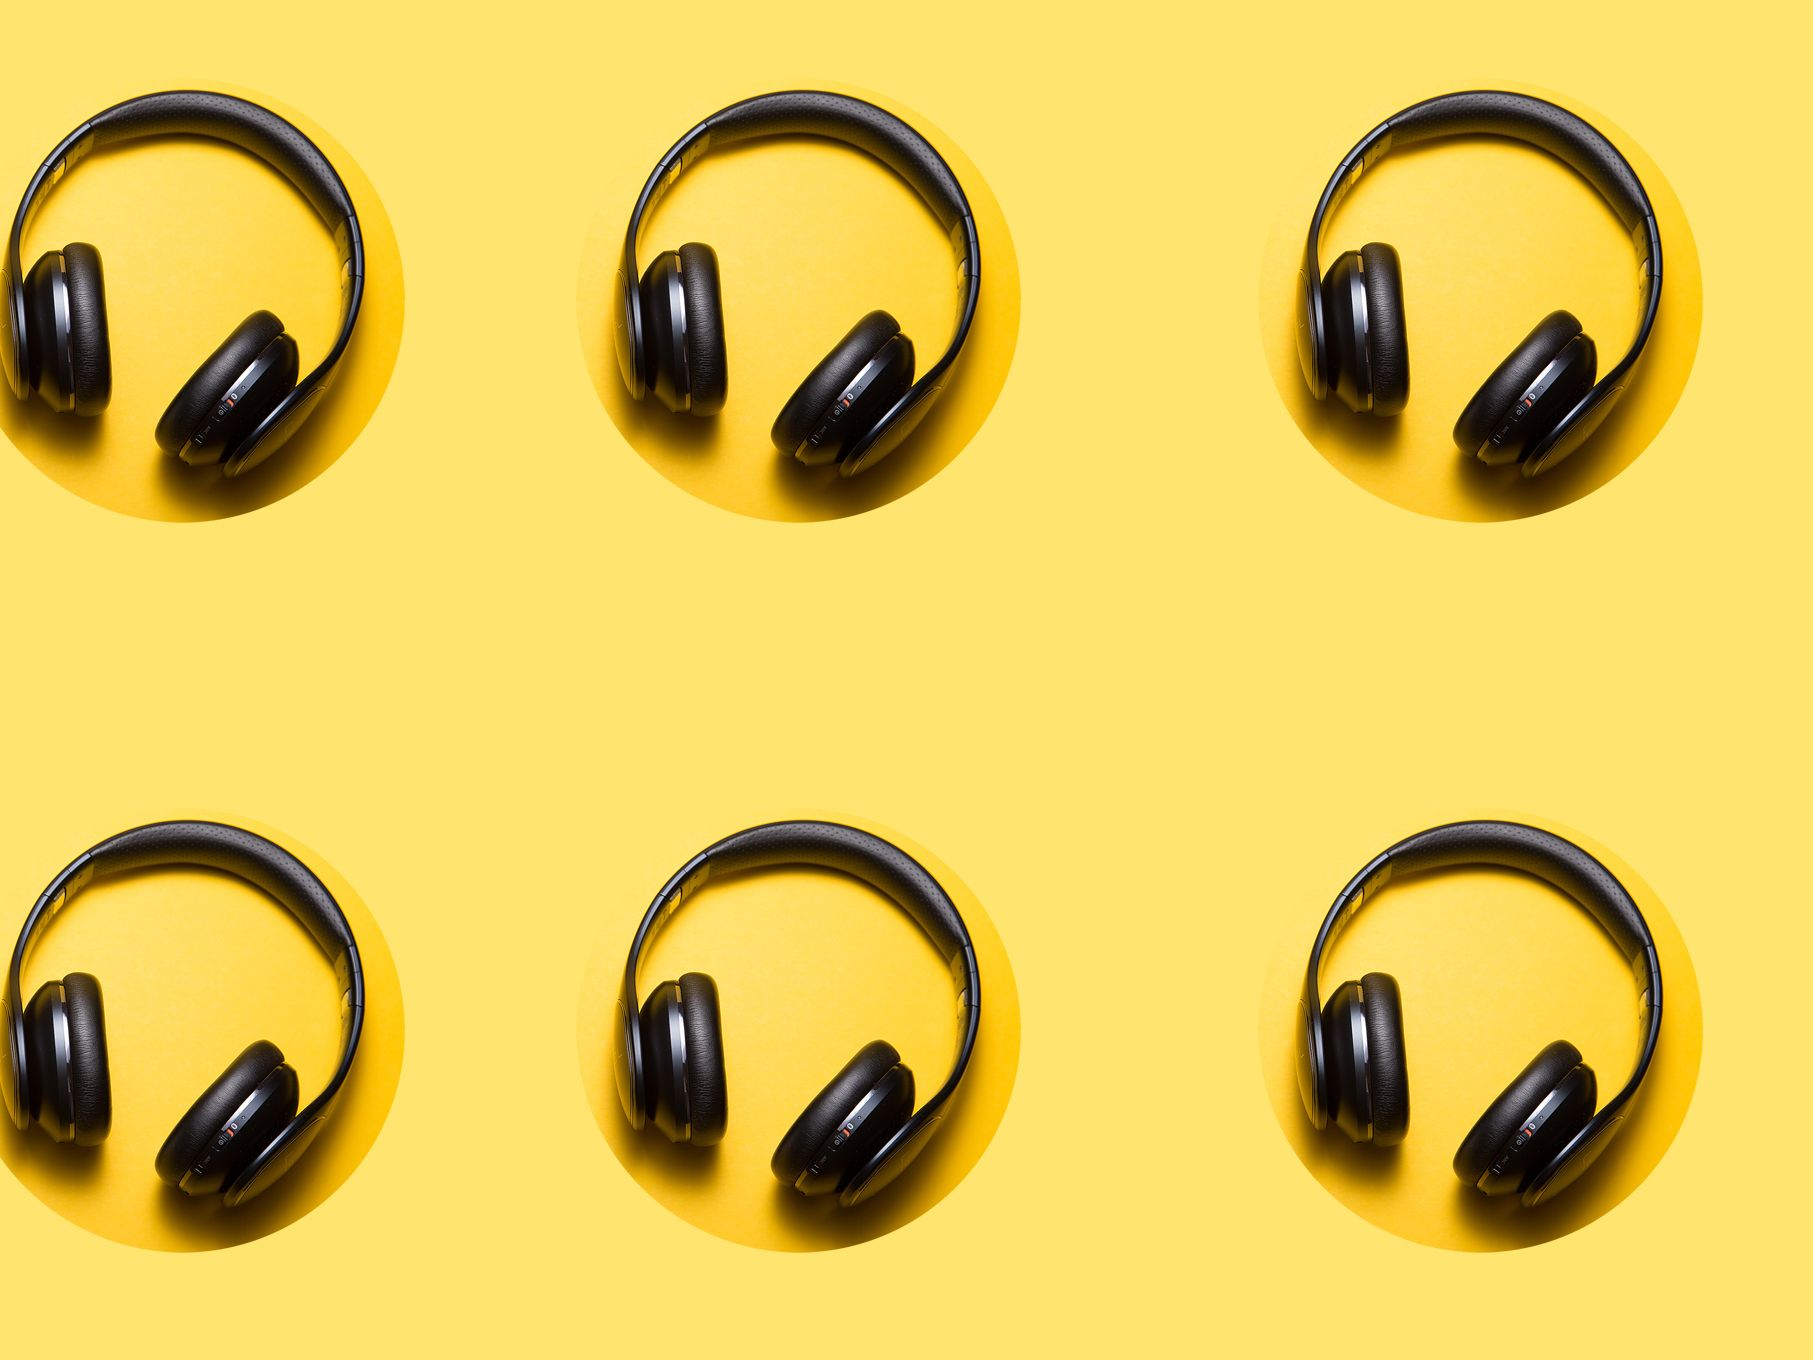 Repeat pattern of 6 black on ear headphones on yellow background